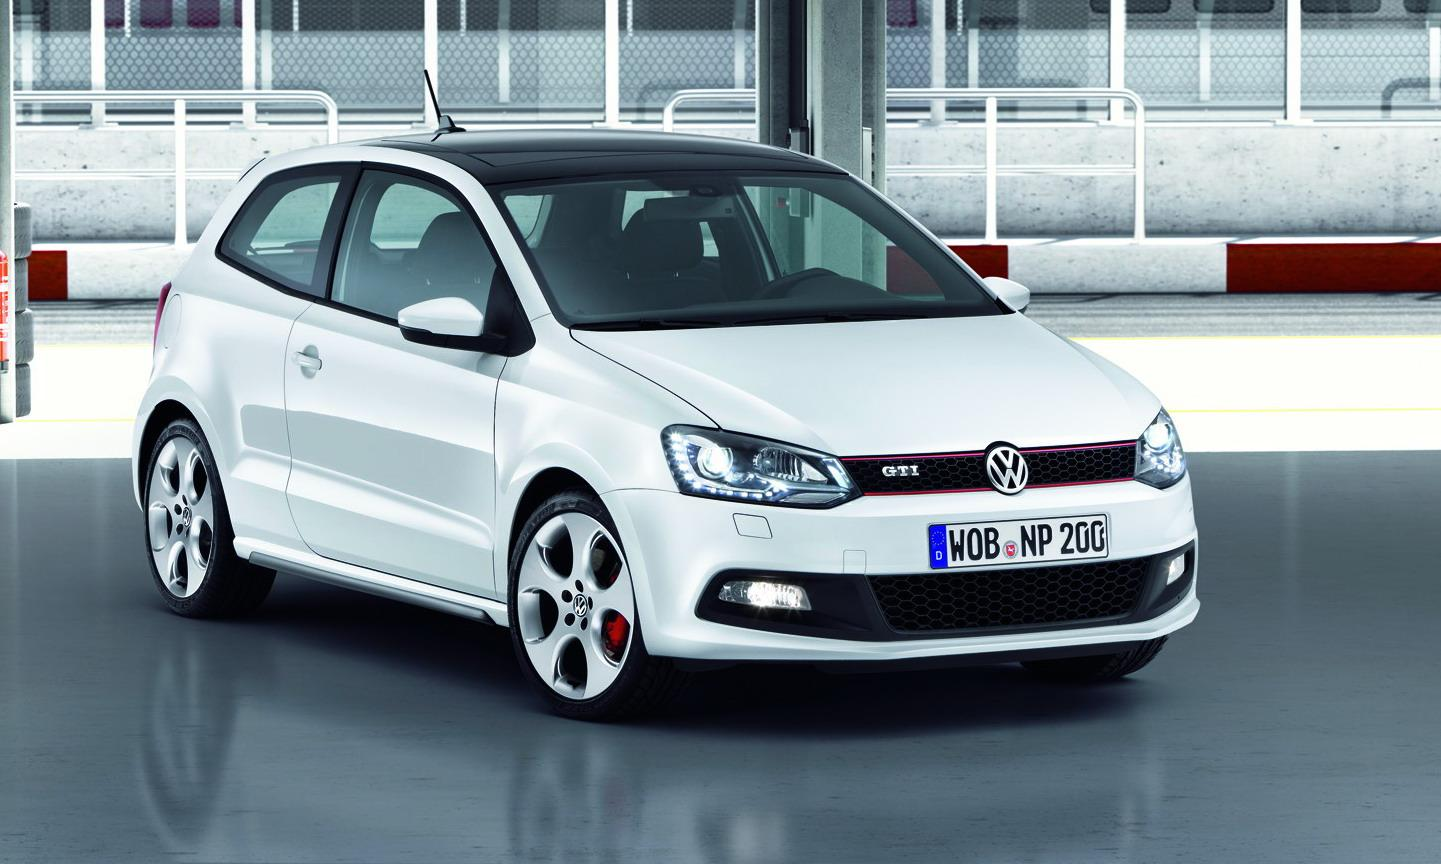 While The Official Debut Will Not Be Made Until March At Geneva Motor Show Volkswagen Has Revealed Today First Images Of Polo GTI Sporty